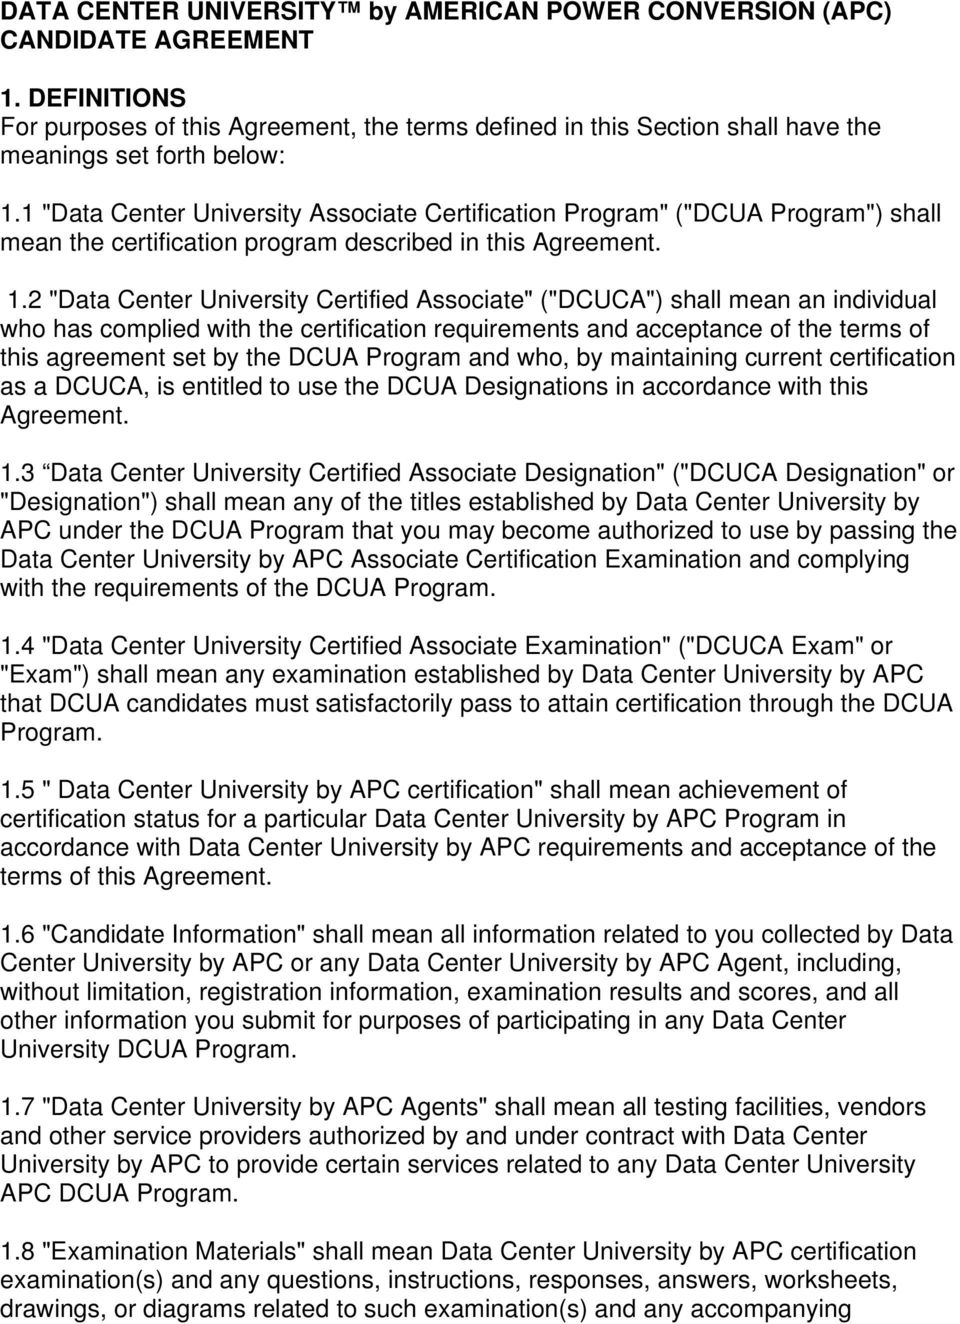 "1 ""Data Center University Associate Certification Program"" (""DCUA Program"") shall mean the certification program described in this Agreement. 1."